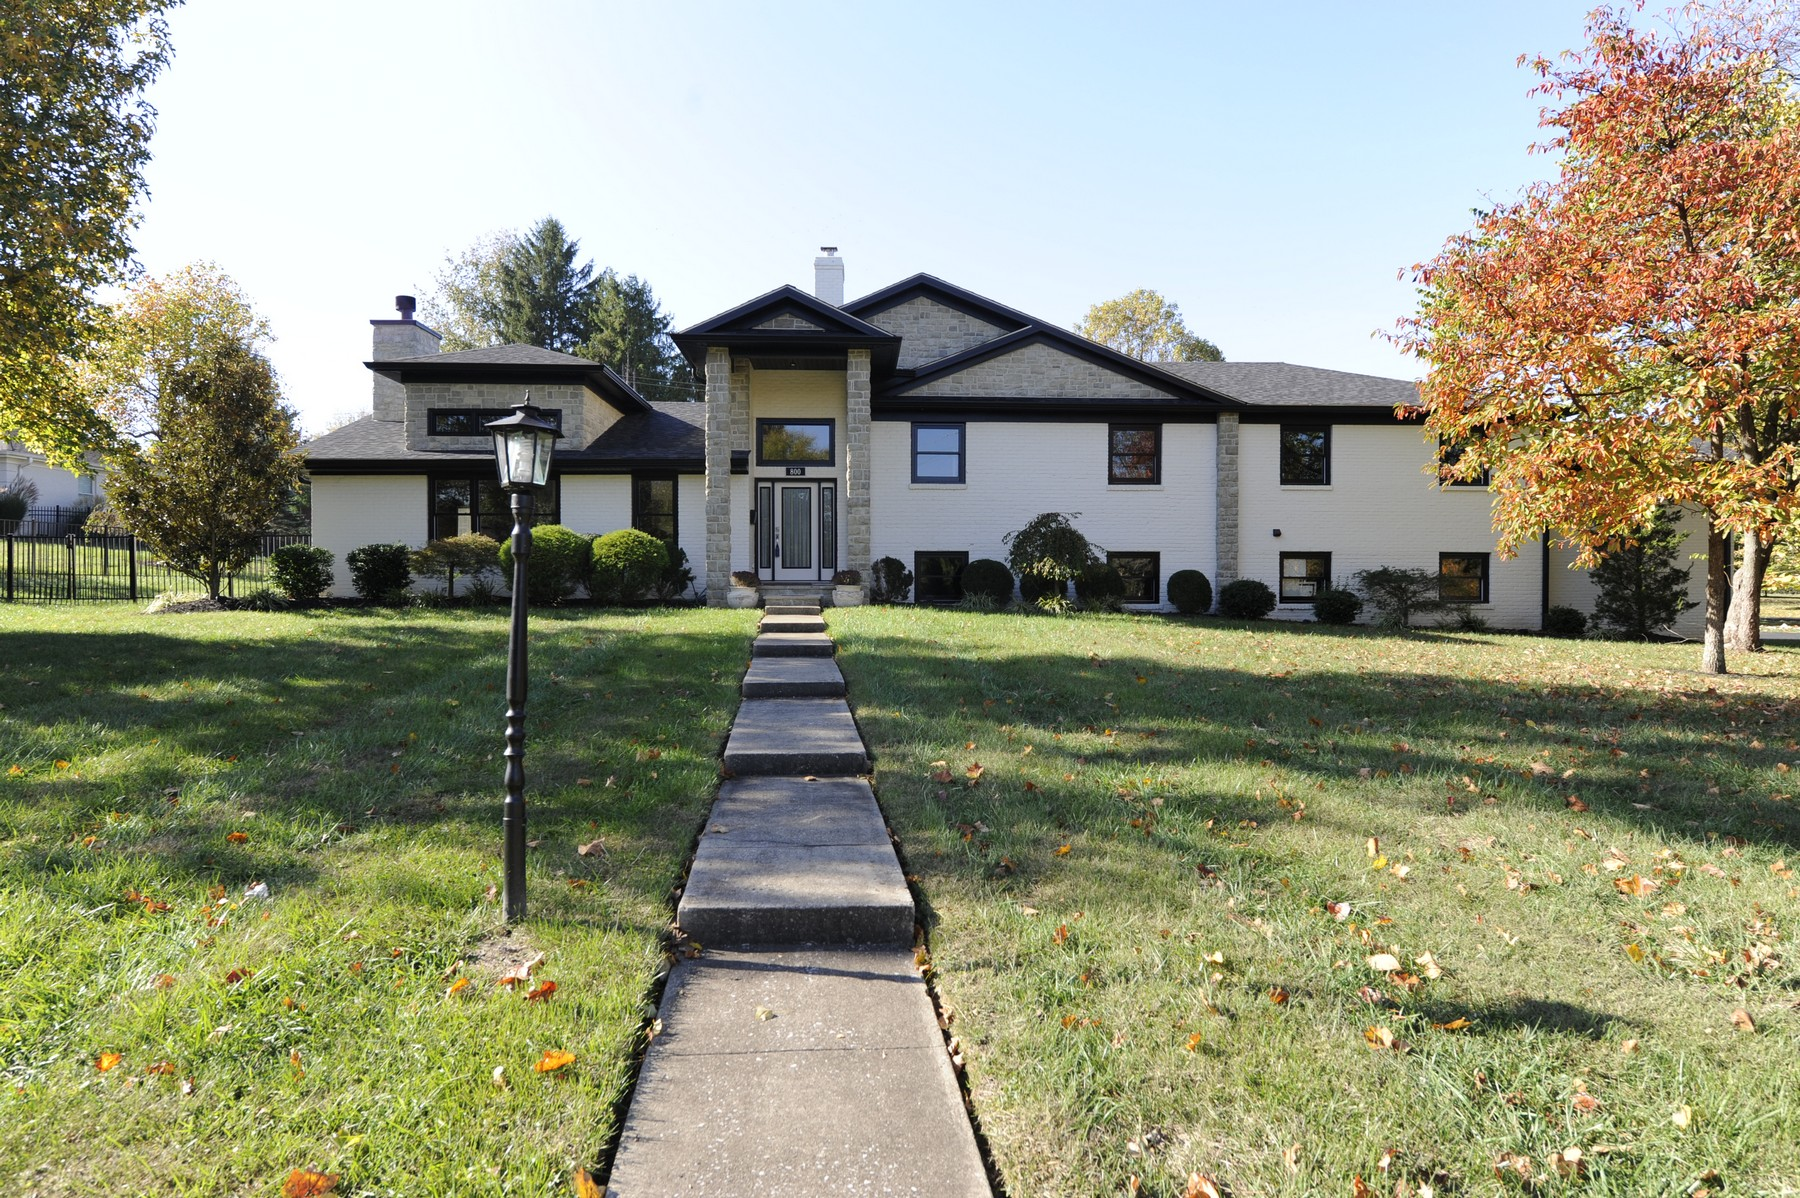 Single Family Home for Sale at 800 Brookhill Drive Lexington, Kentucky 40502 United States